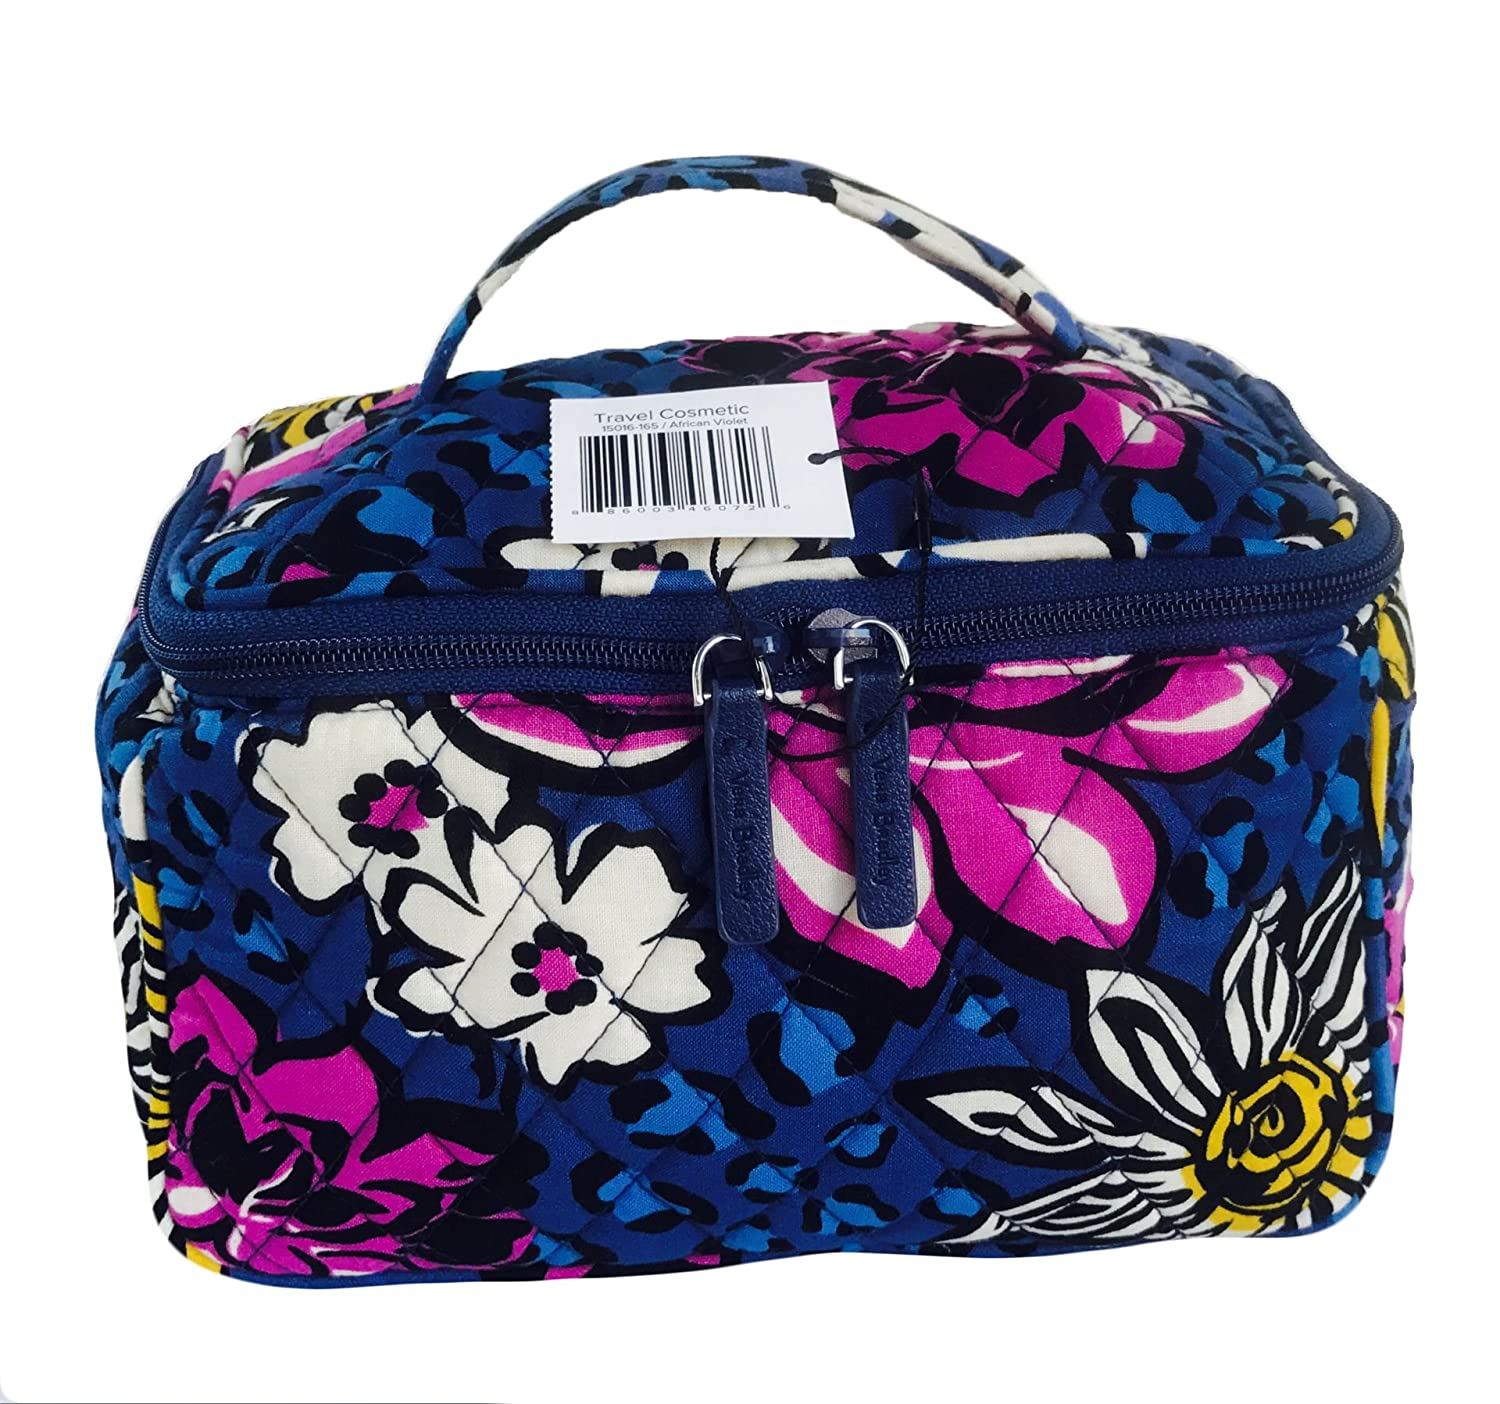 3f6d54e7e7bf Vera Bradley Travel Cosmetic Bag in African Violet